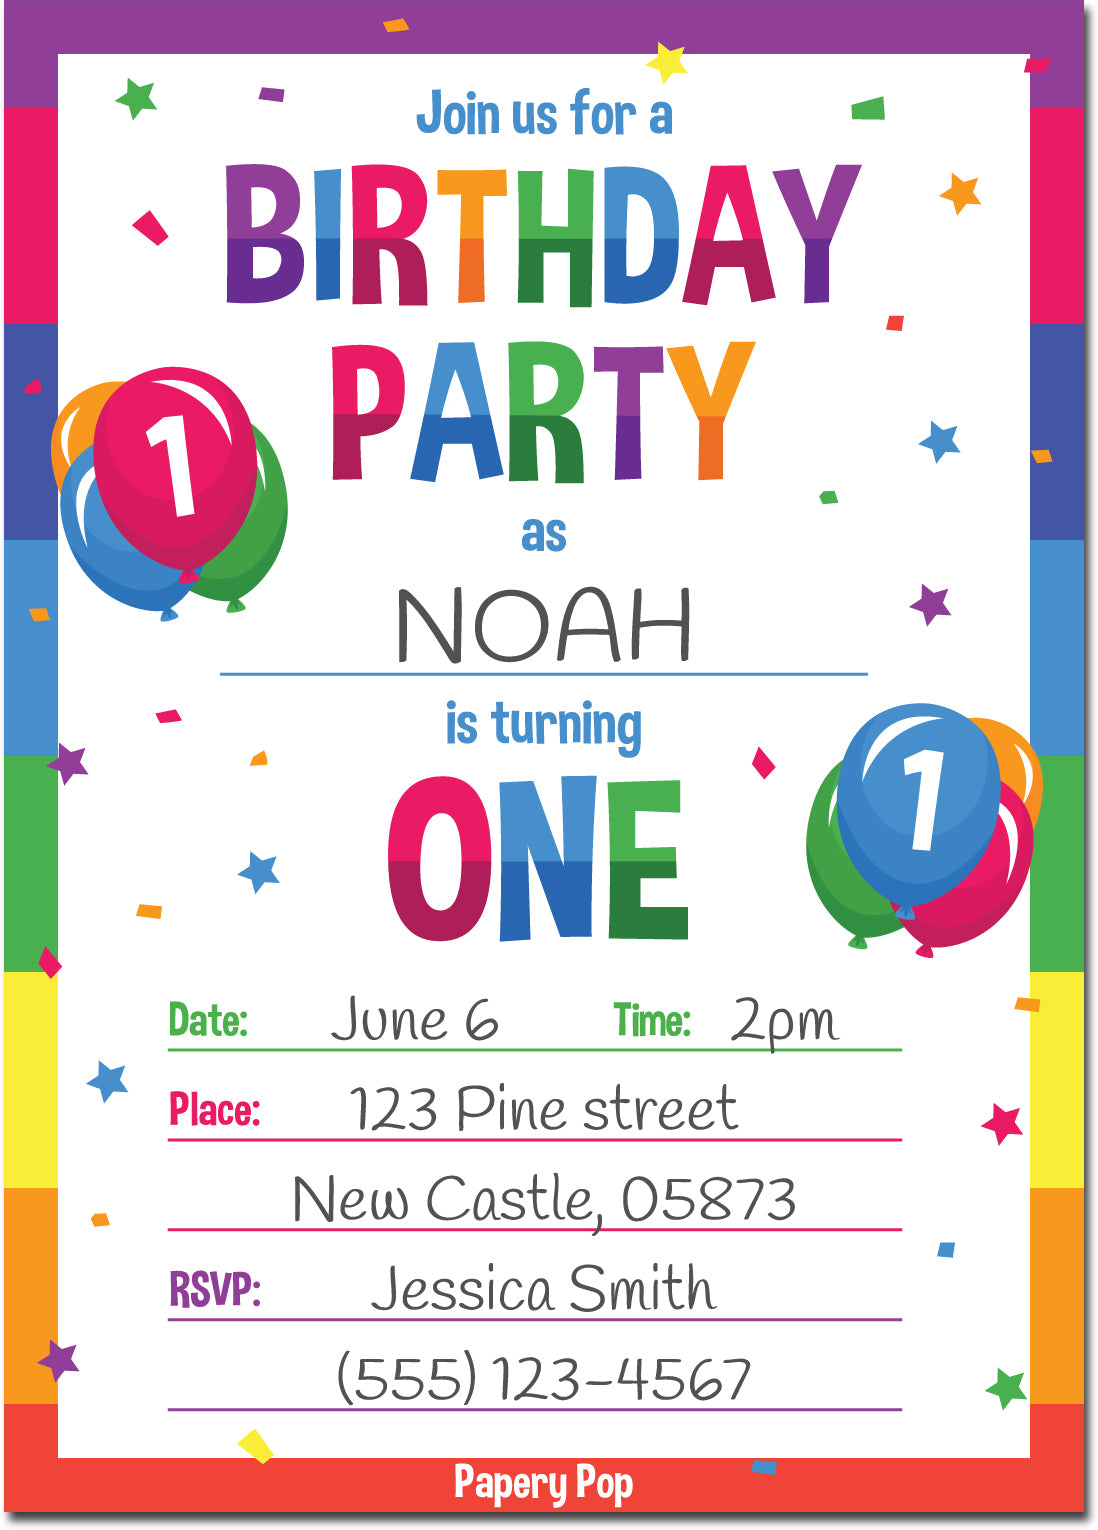 1 Year Old Birthday Party Invitations With Envelopes 15 Count